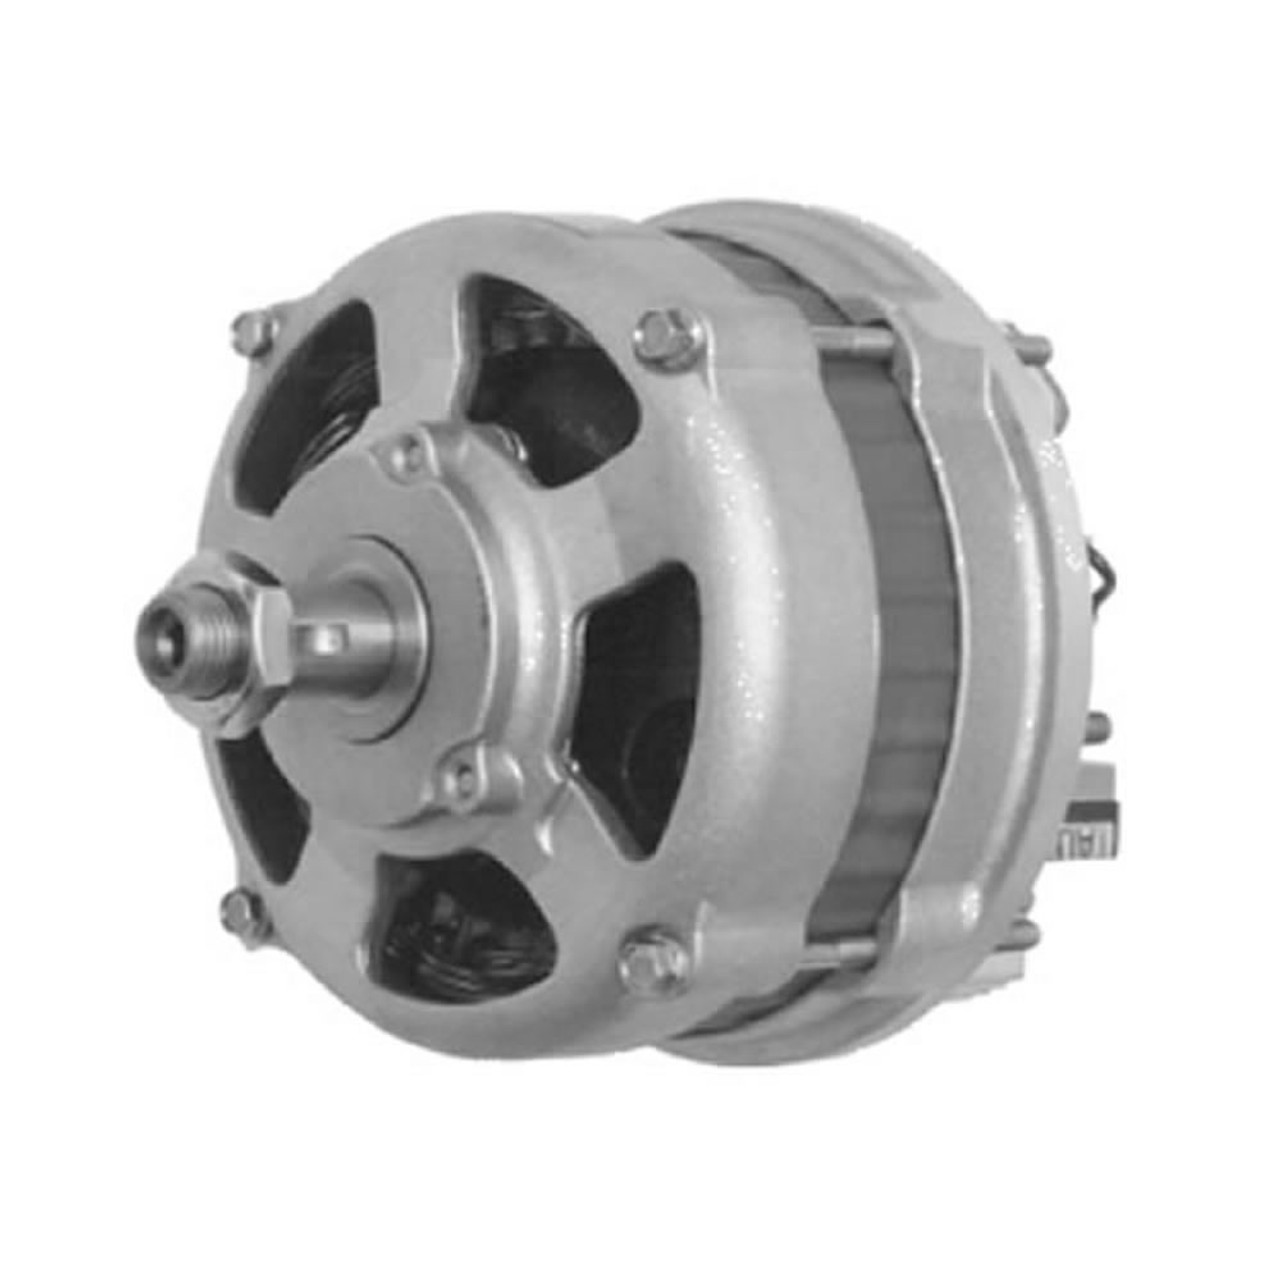 medium resolution of atlas crawler excavator 160lc letrika alternator mg111